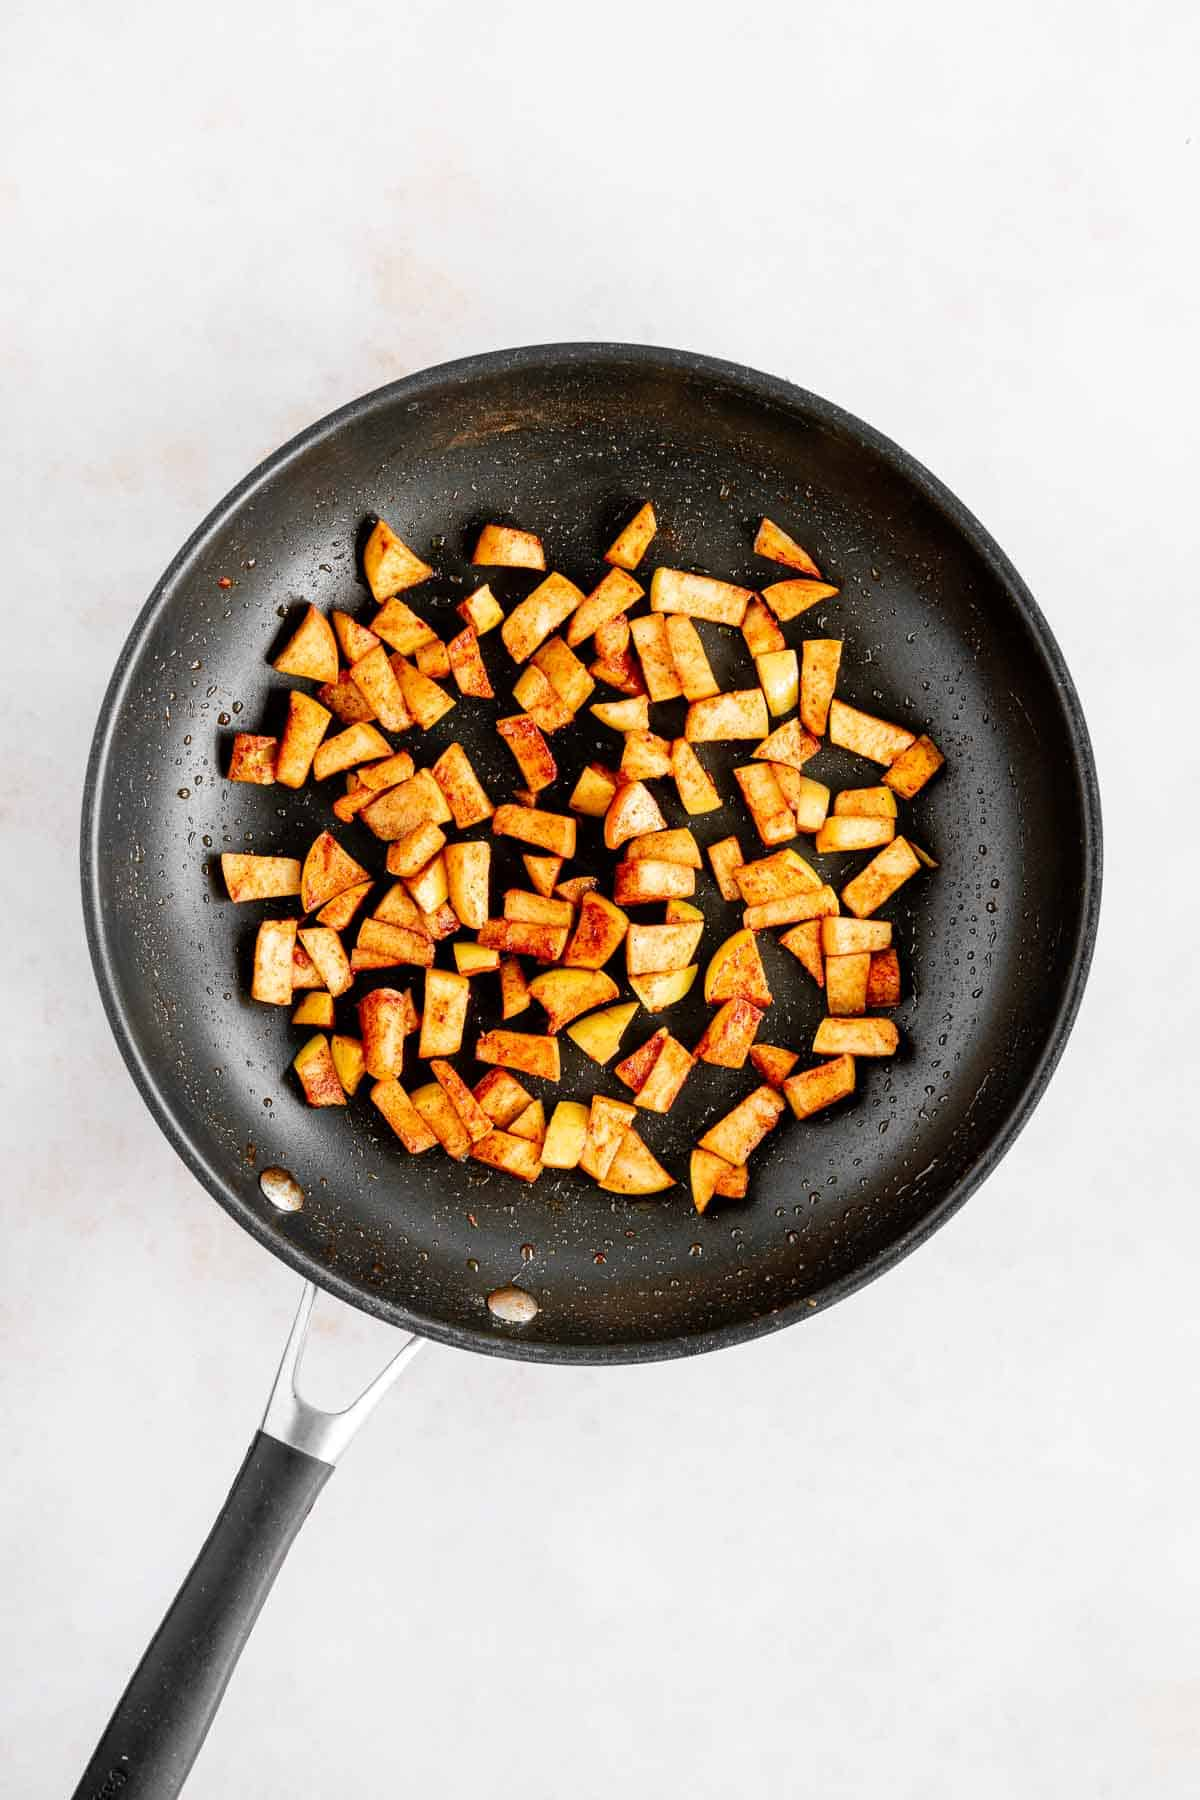 caramelized apples with cinnamon on a skillet